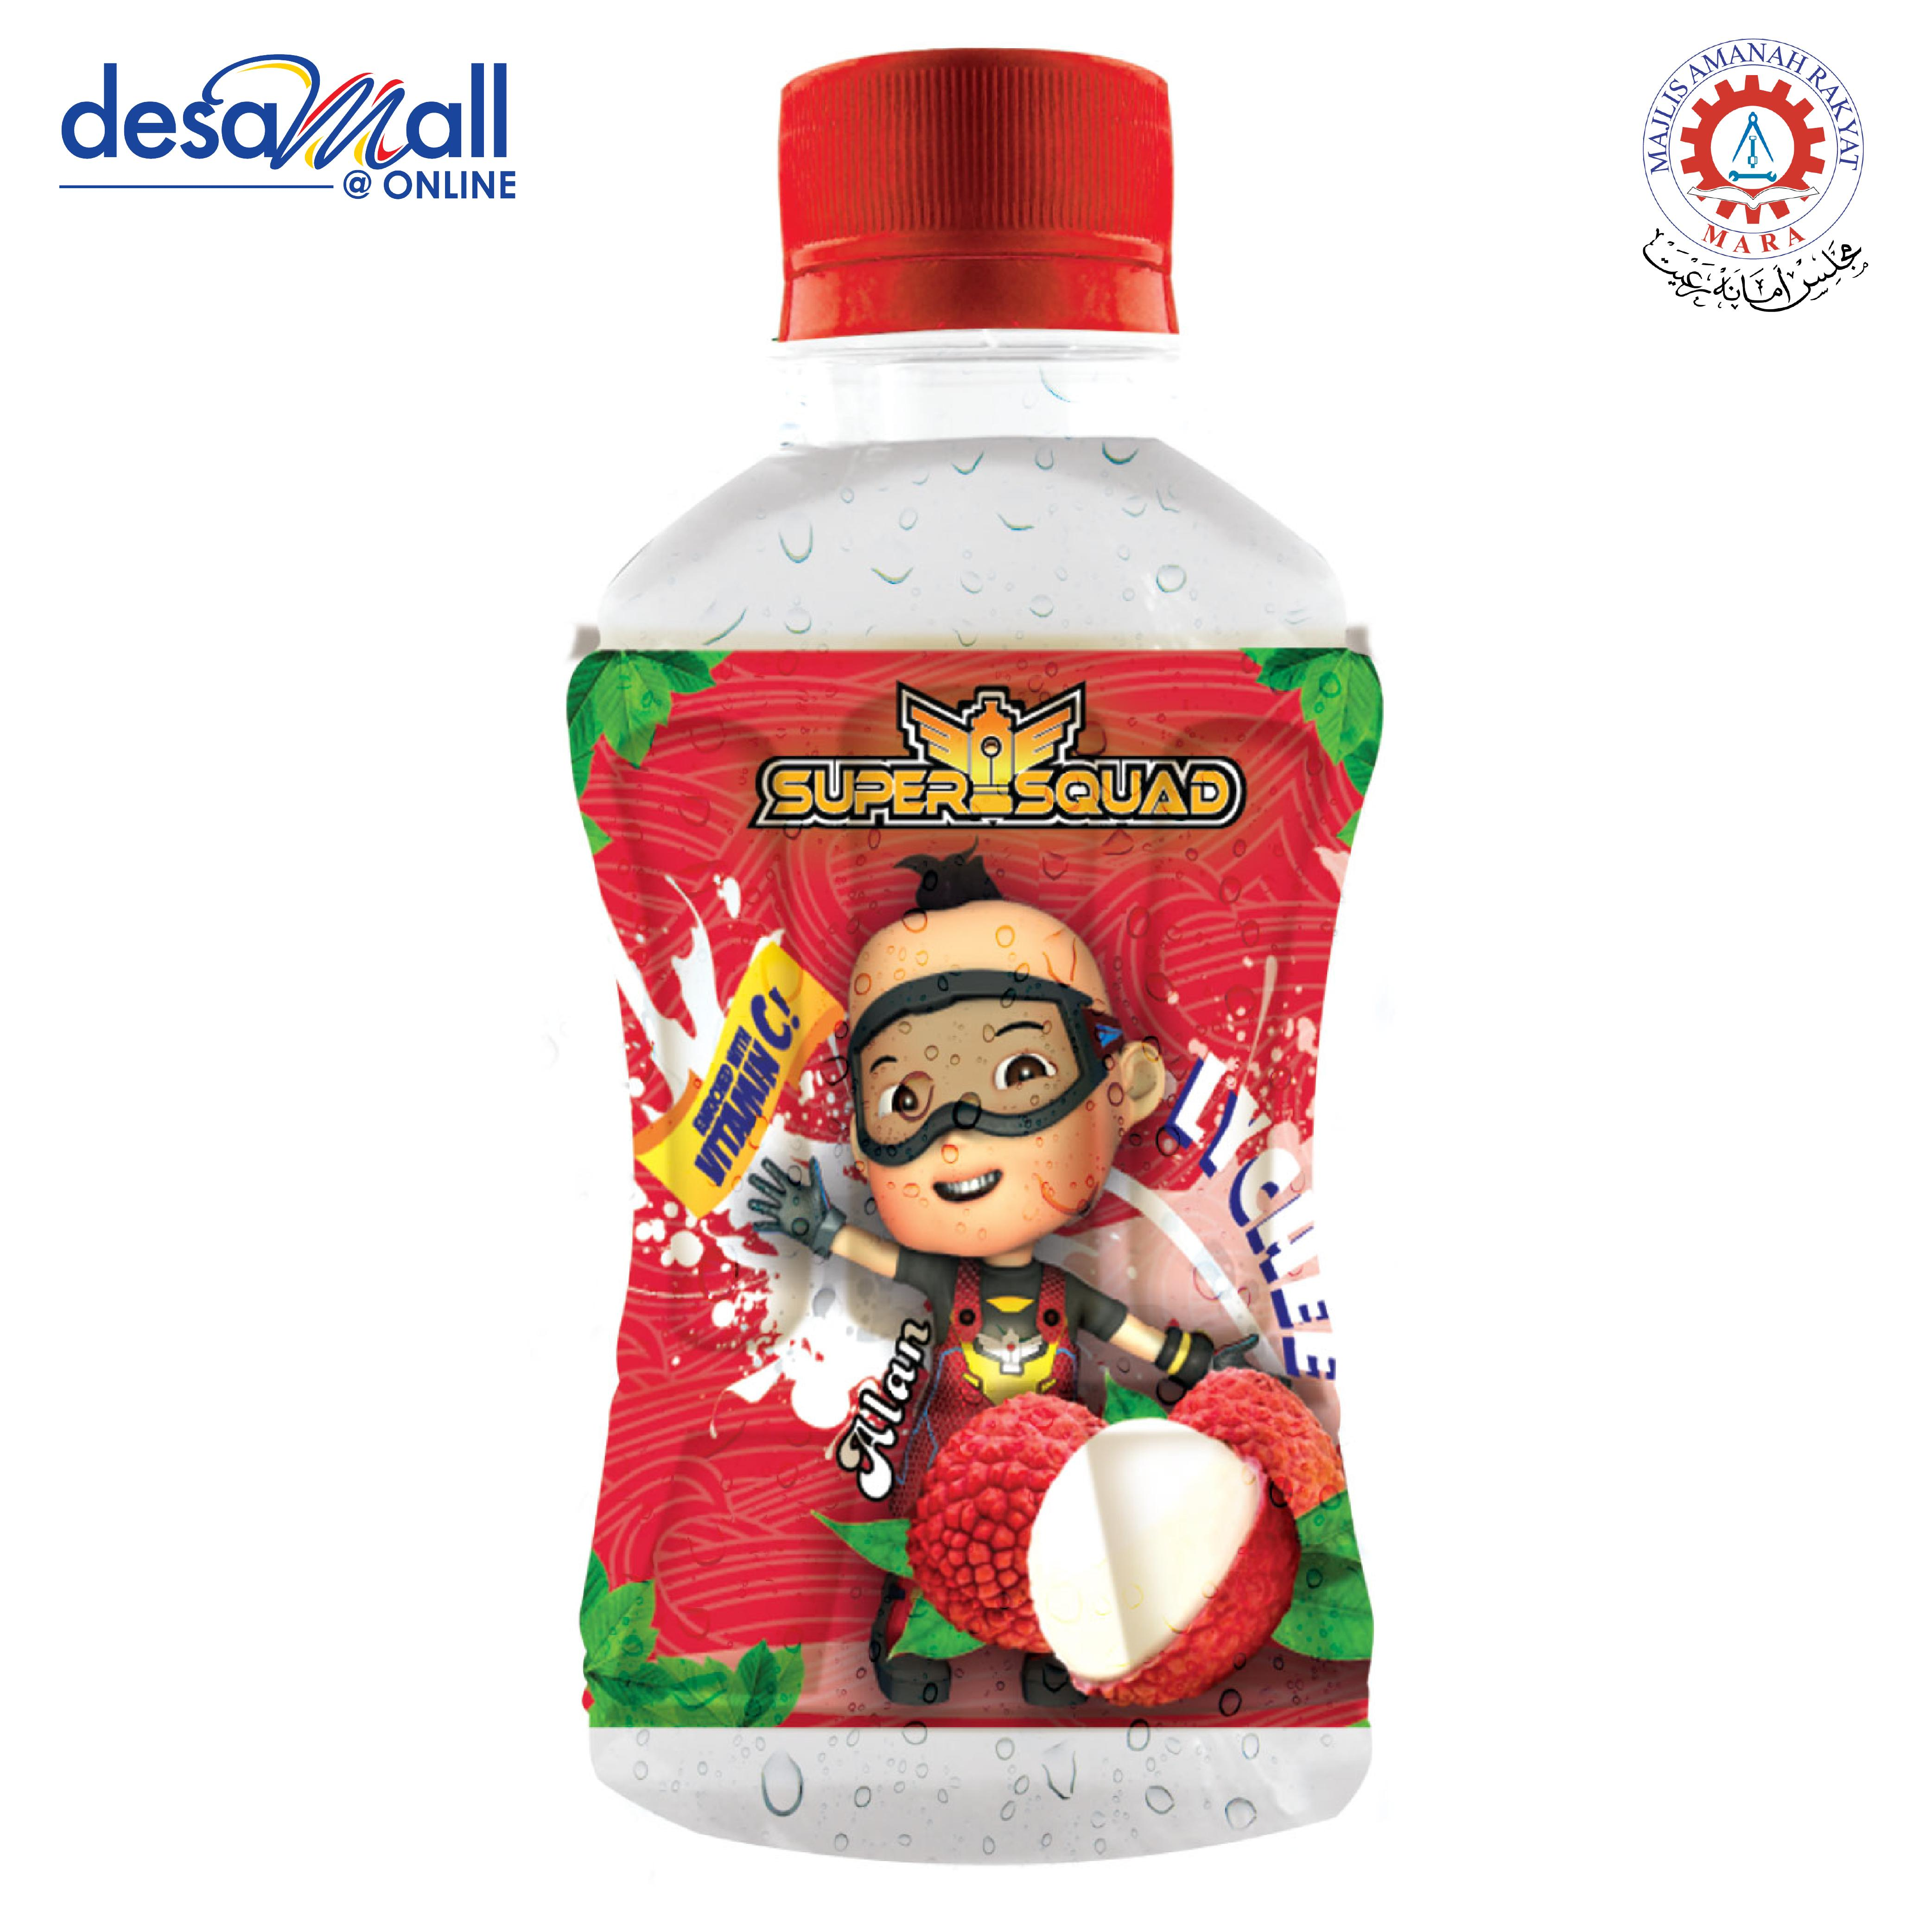 KINCIRMAS Supersquad Lychee 280ml